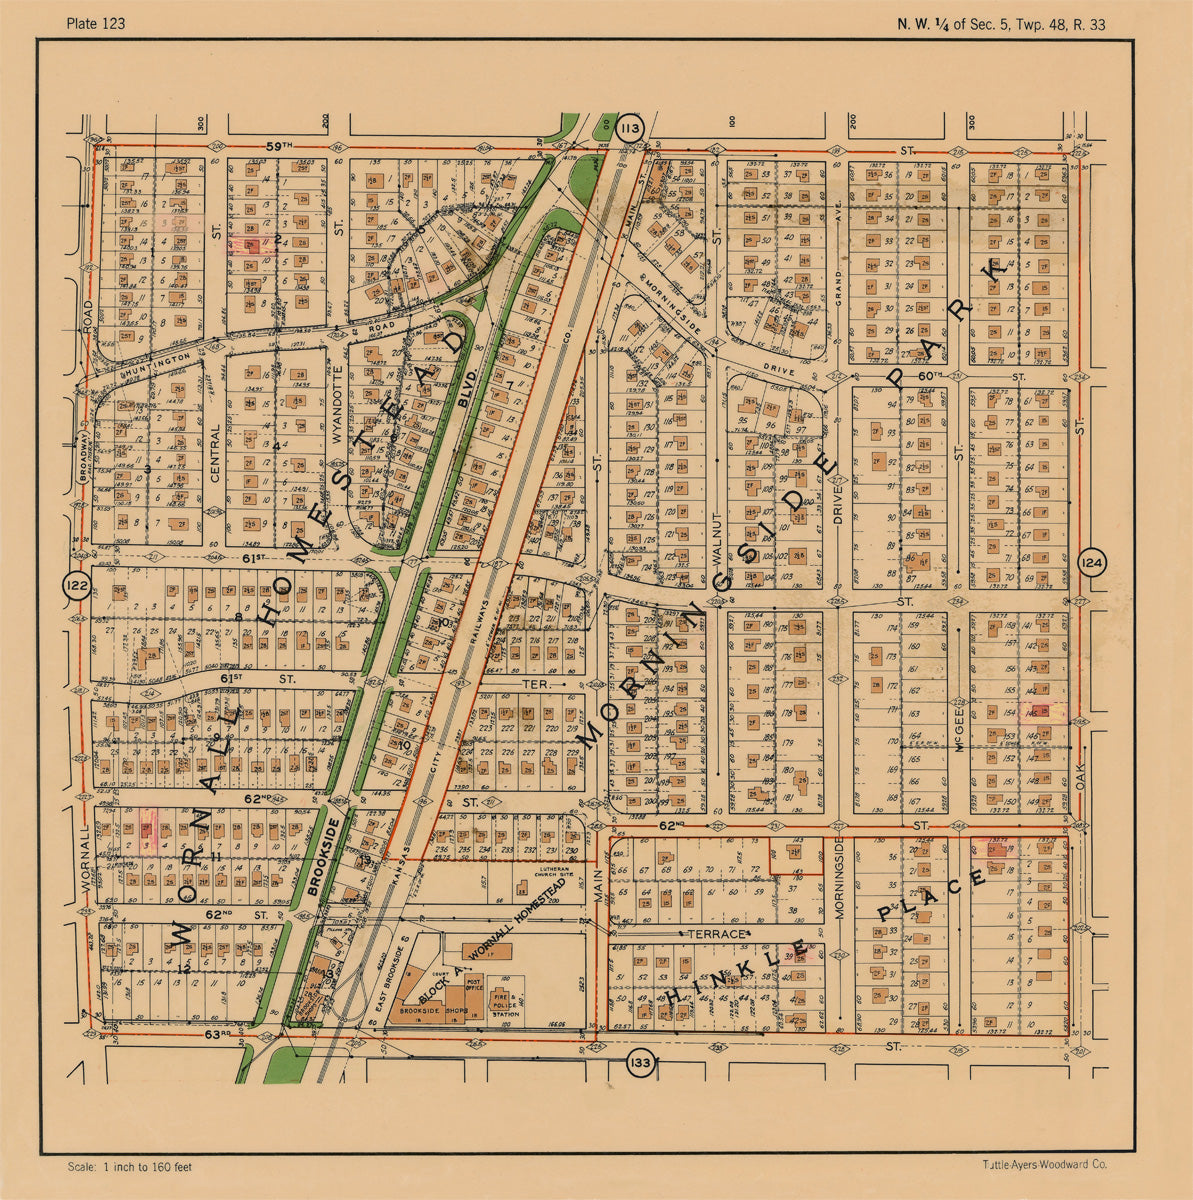 Kansas City 1925 Neighborhood Map - Plate #123 59th-63rd Wornall-Oak